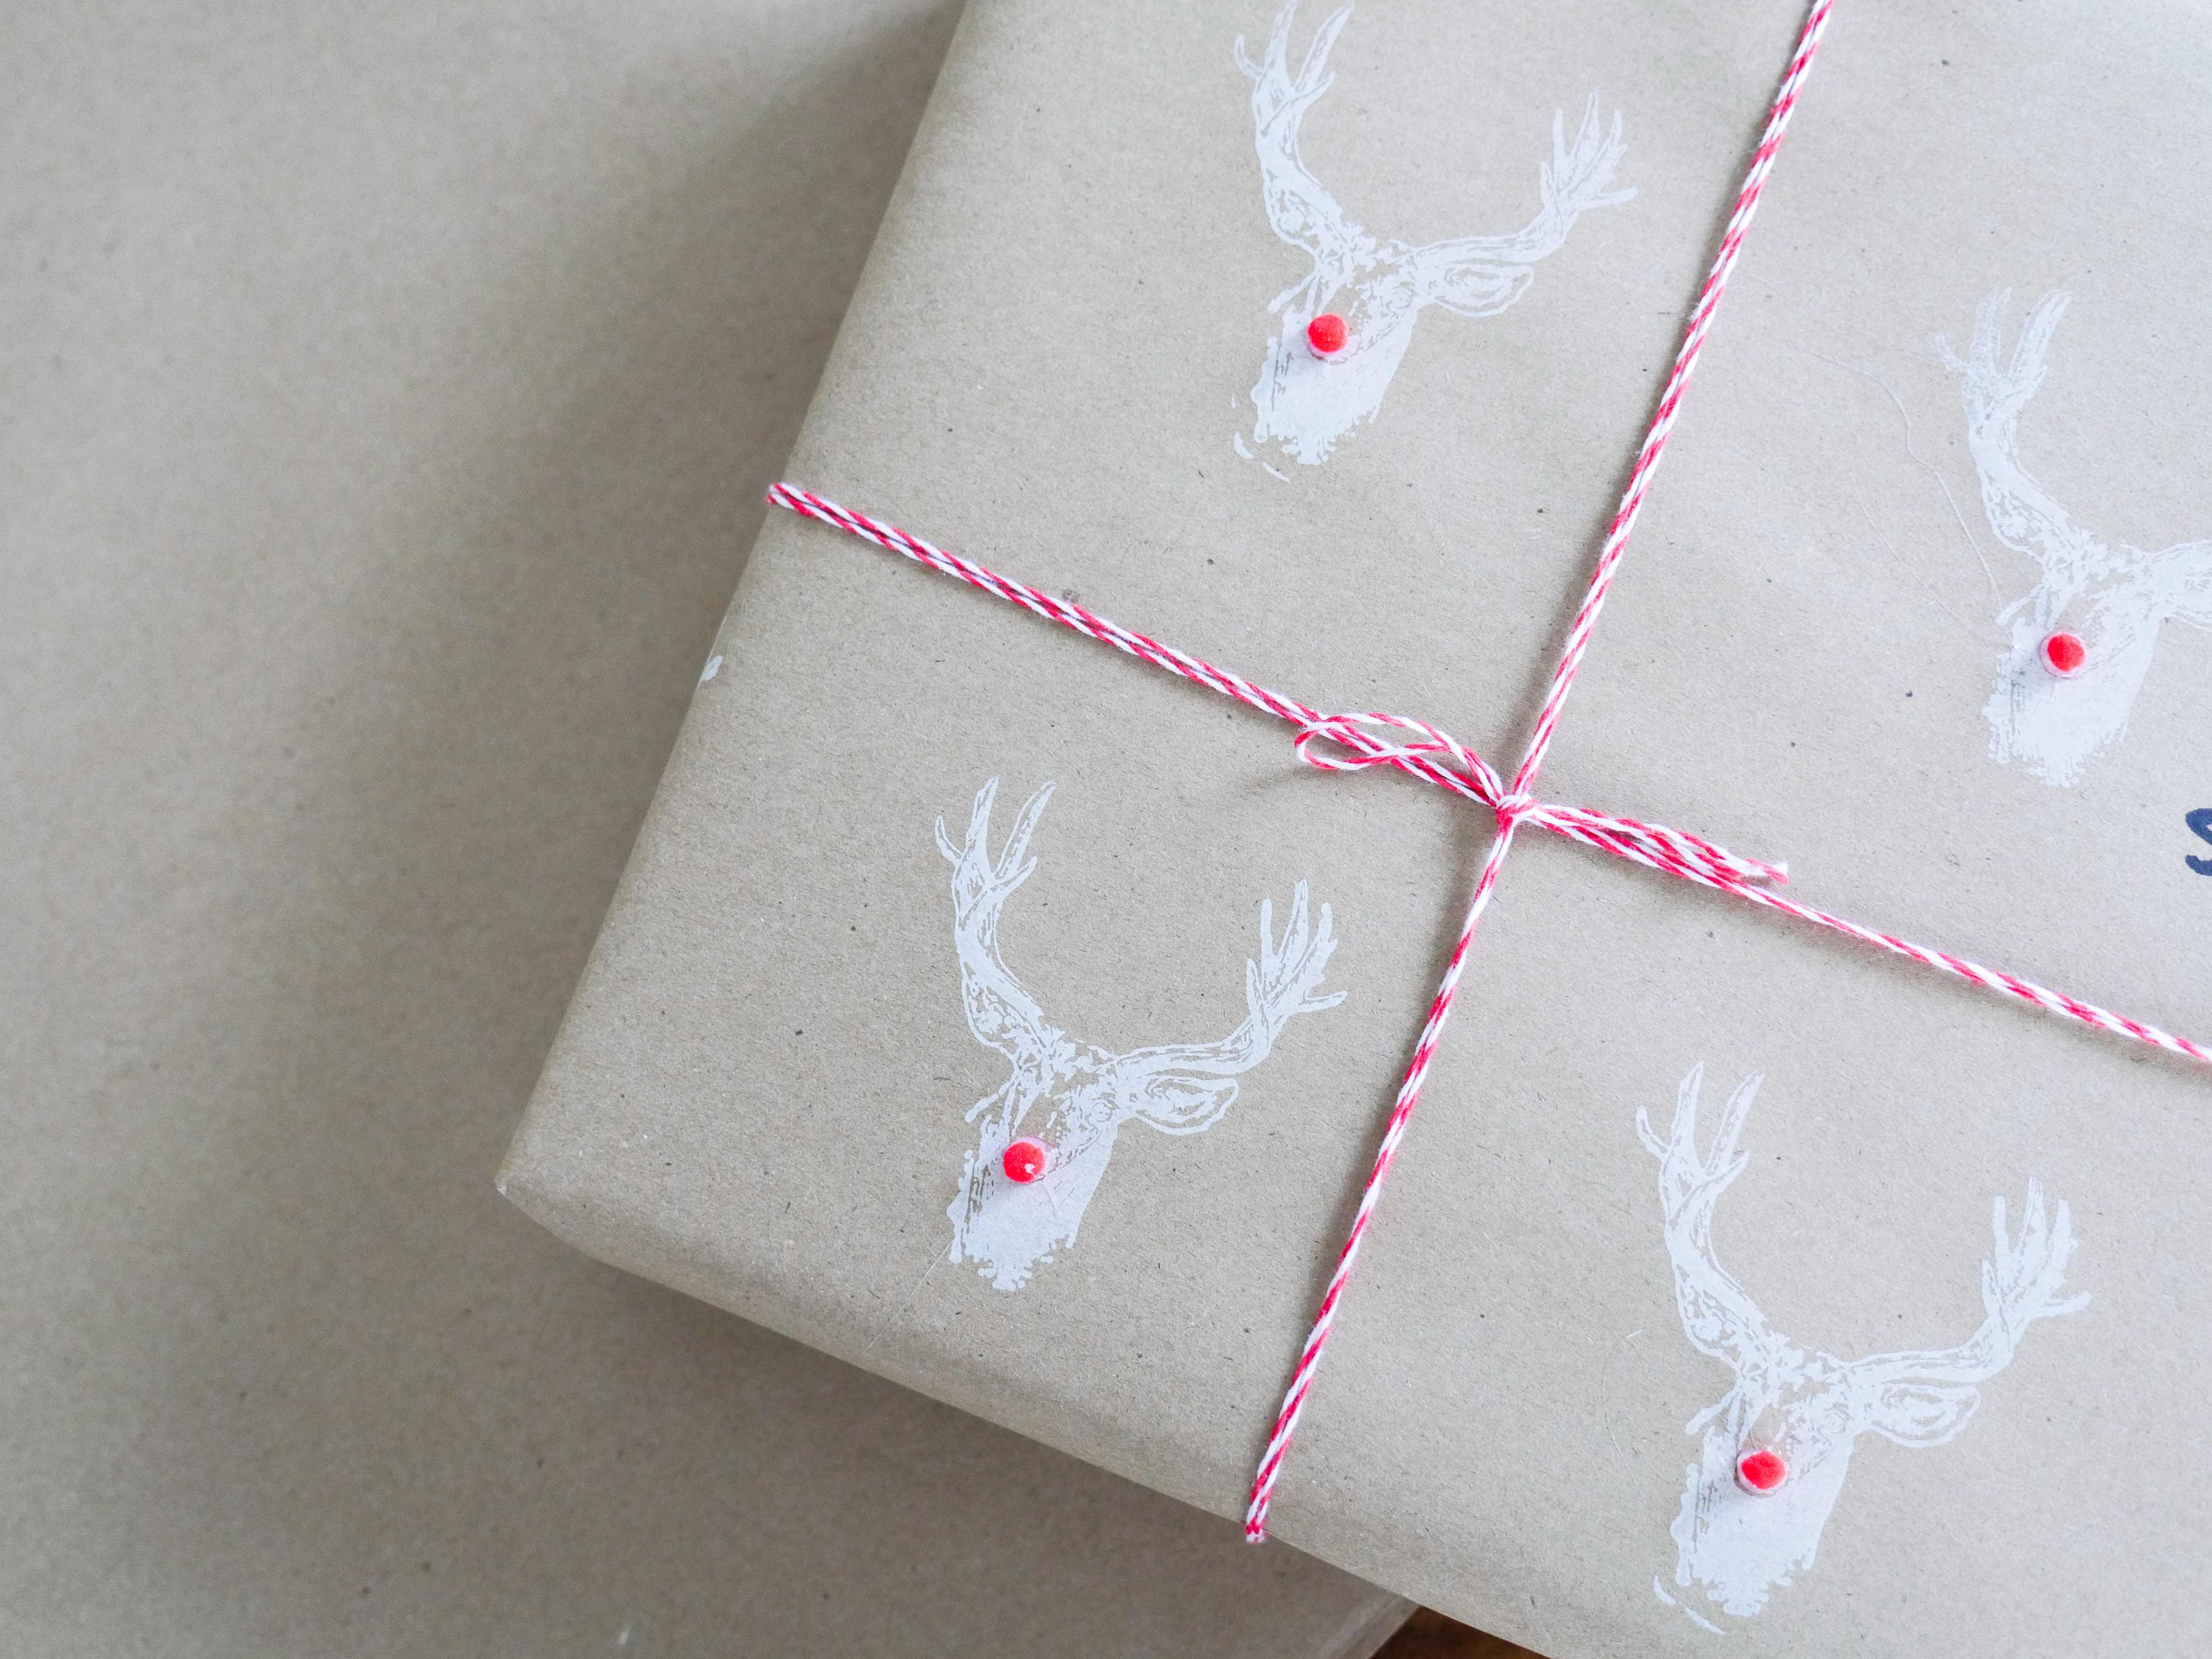 Eva Amurri shares 4 kraft paper gift wrapping ideas